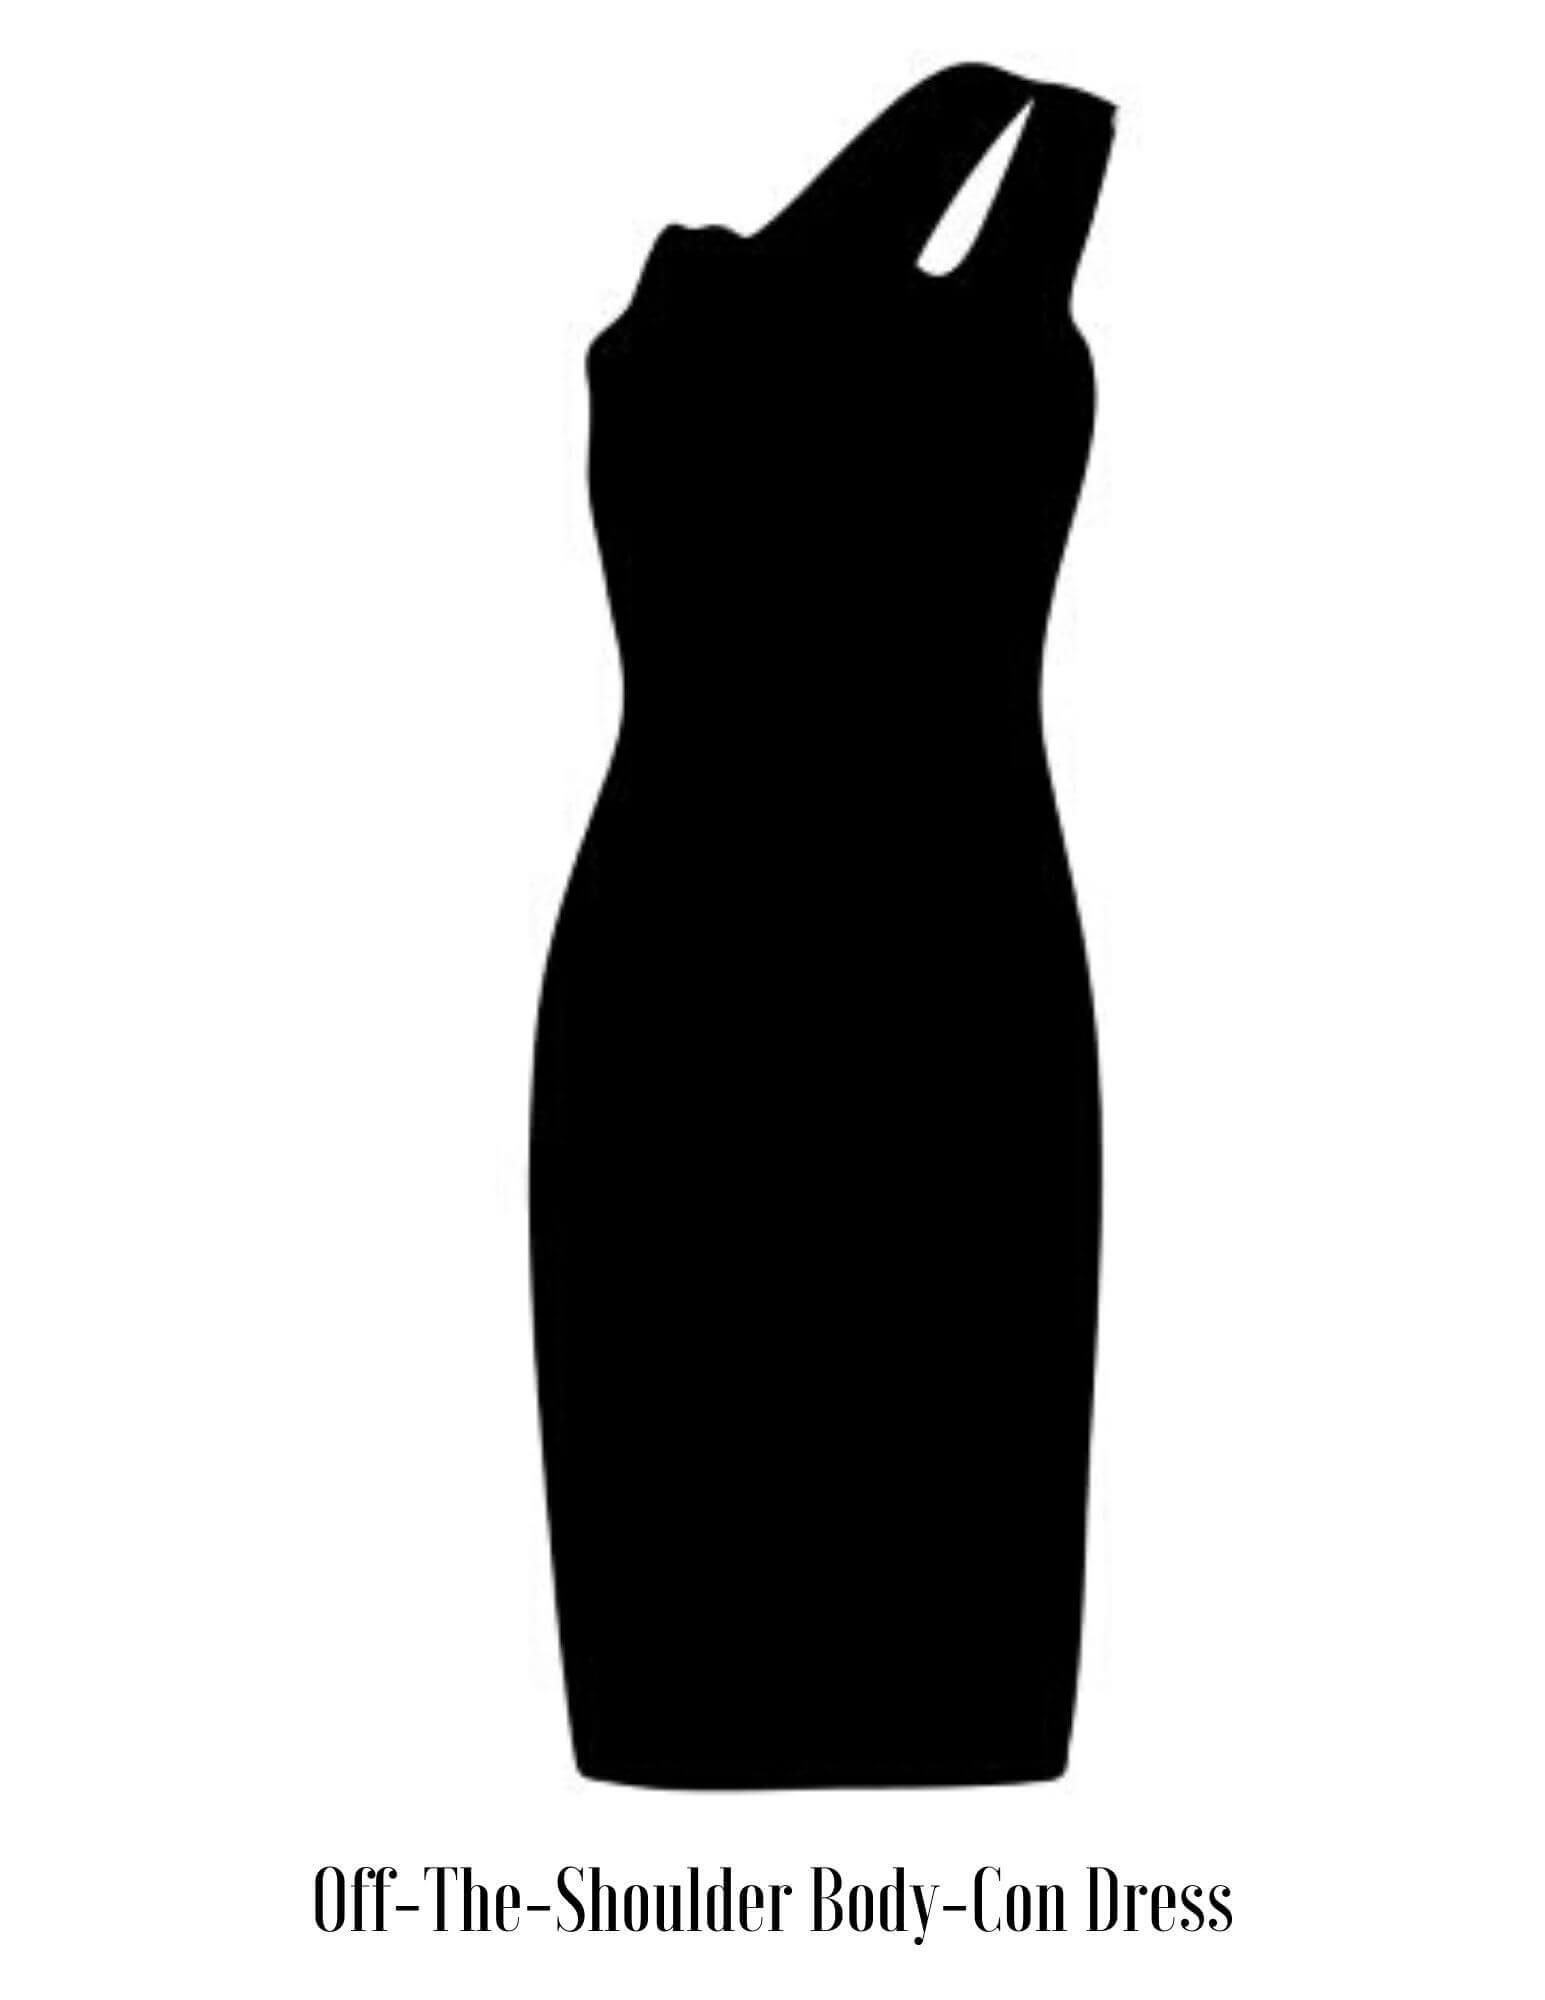 off the shoulder body con dress vector